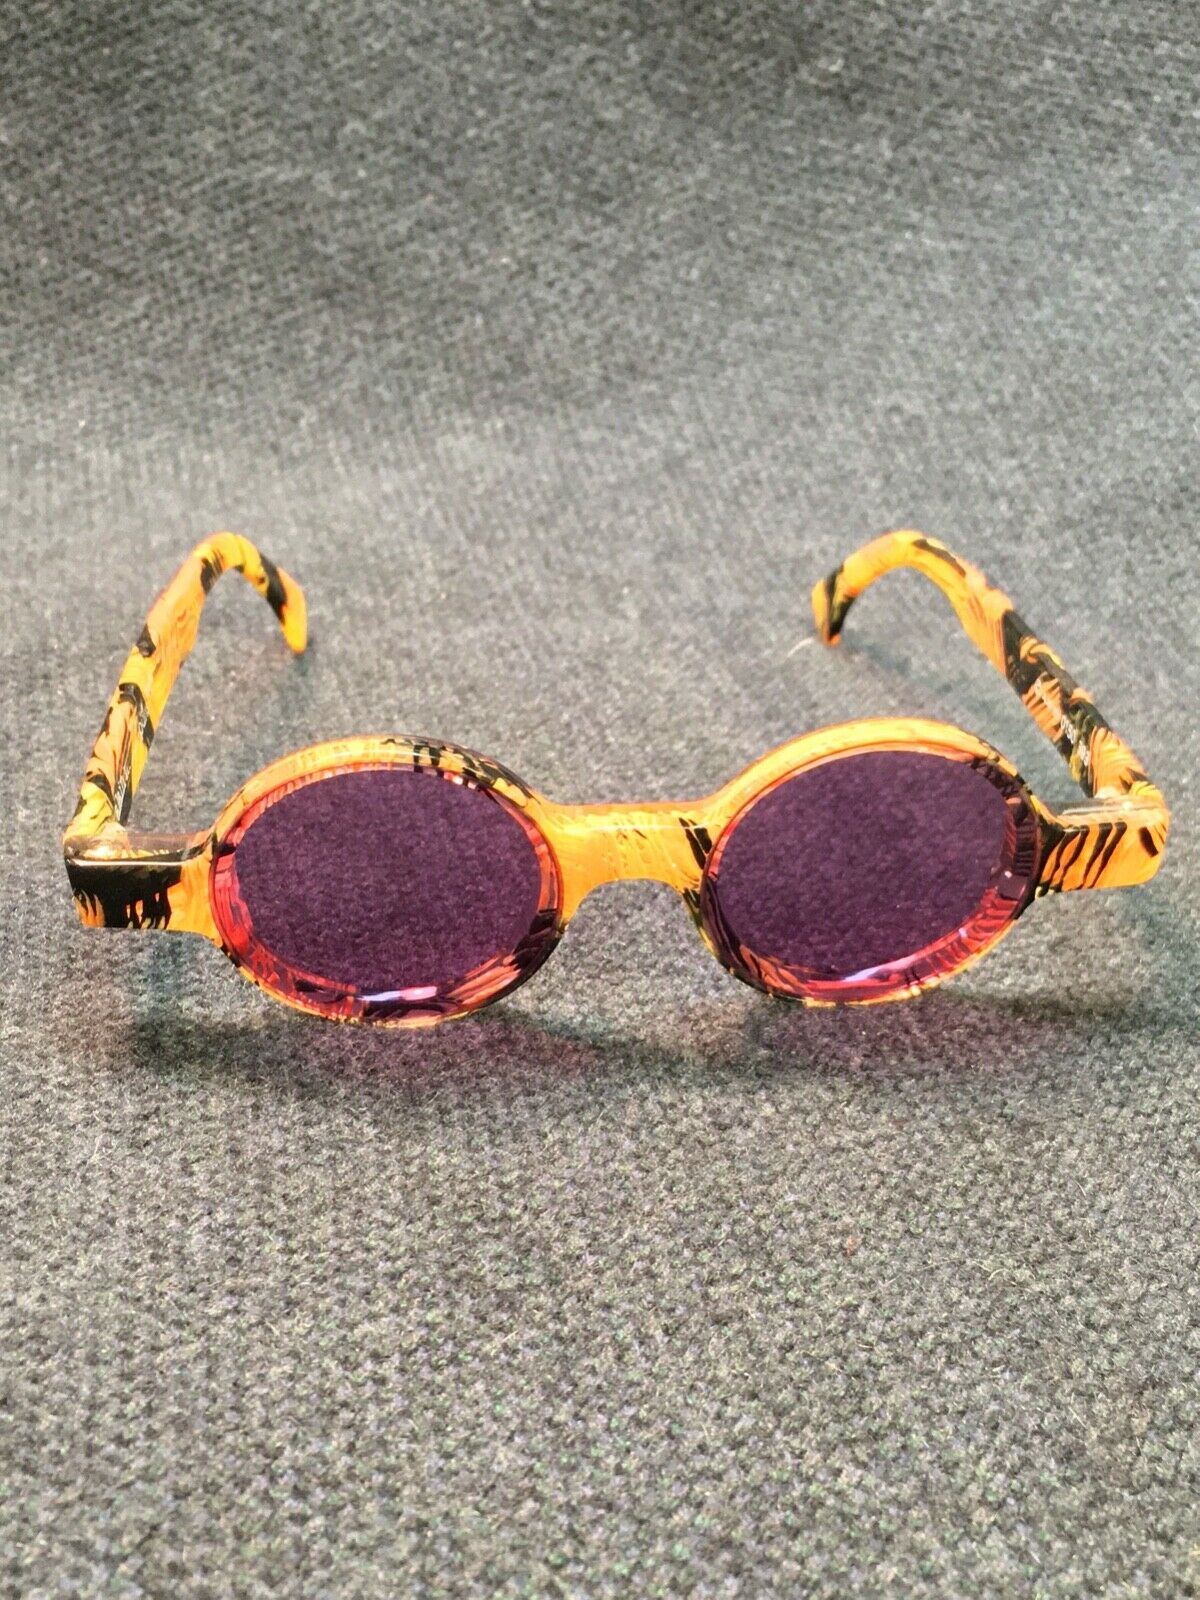 Vintage Alain MIKLI Sunglasses with Case - image 3